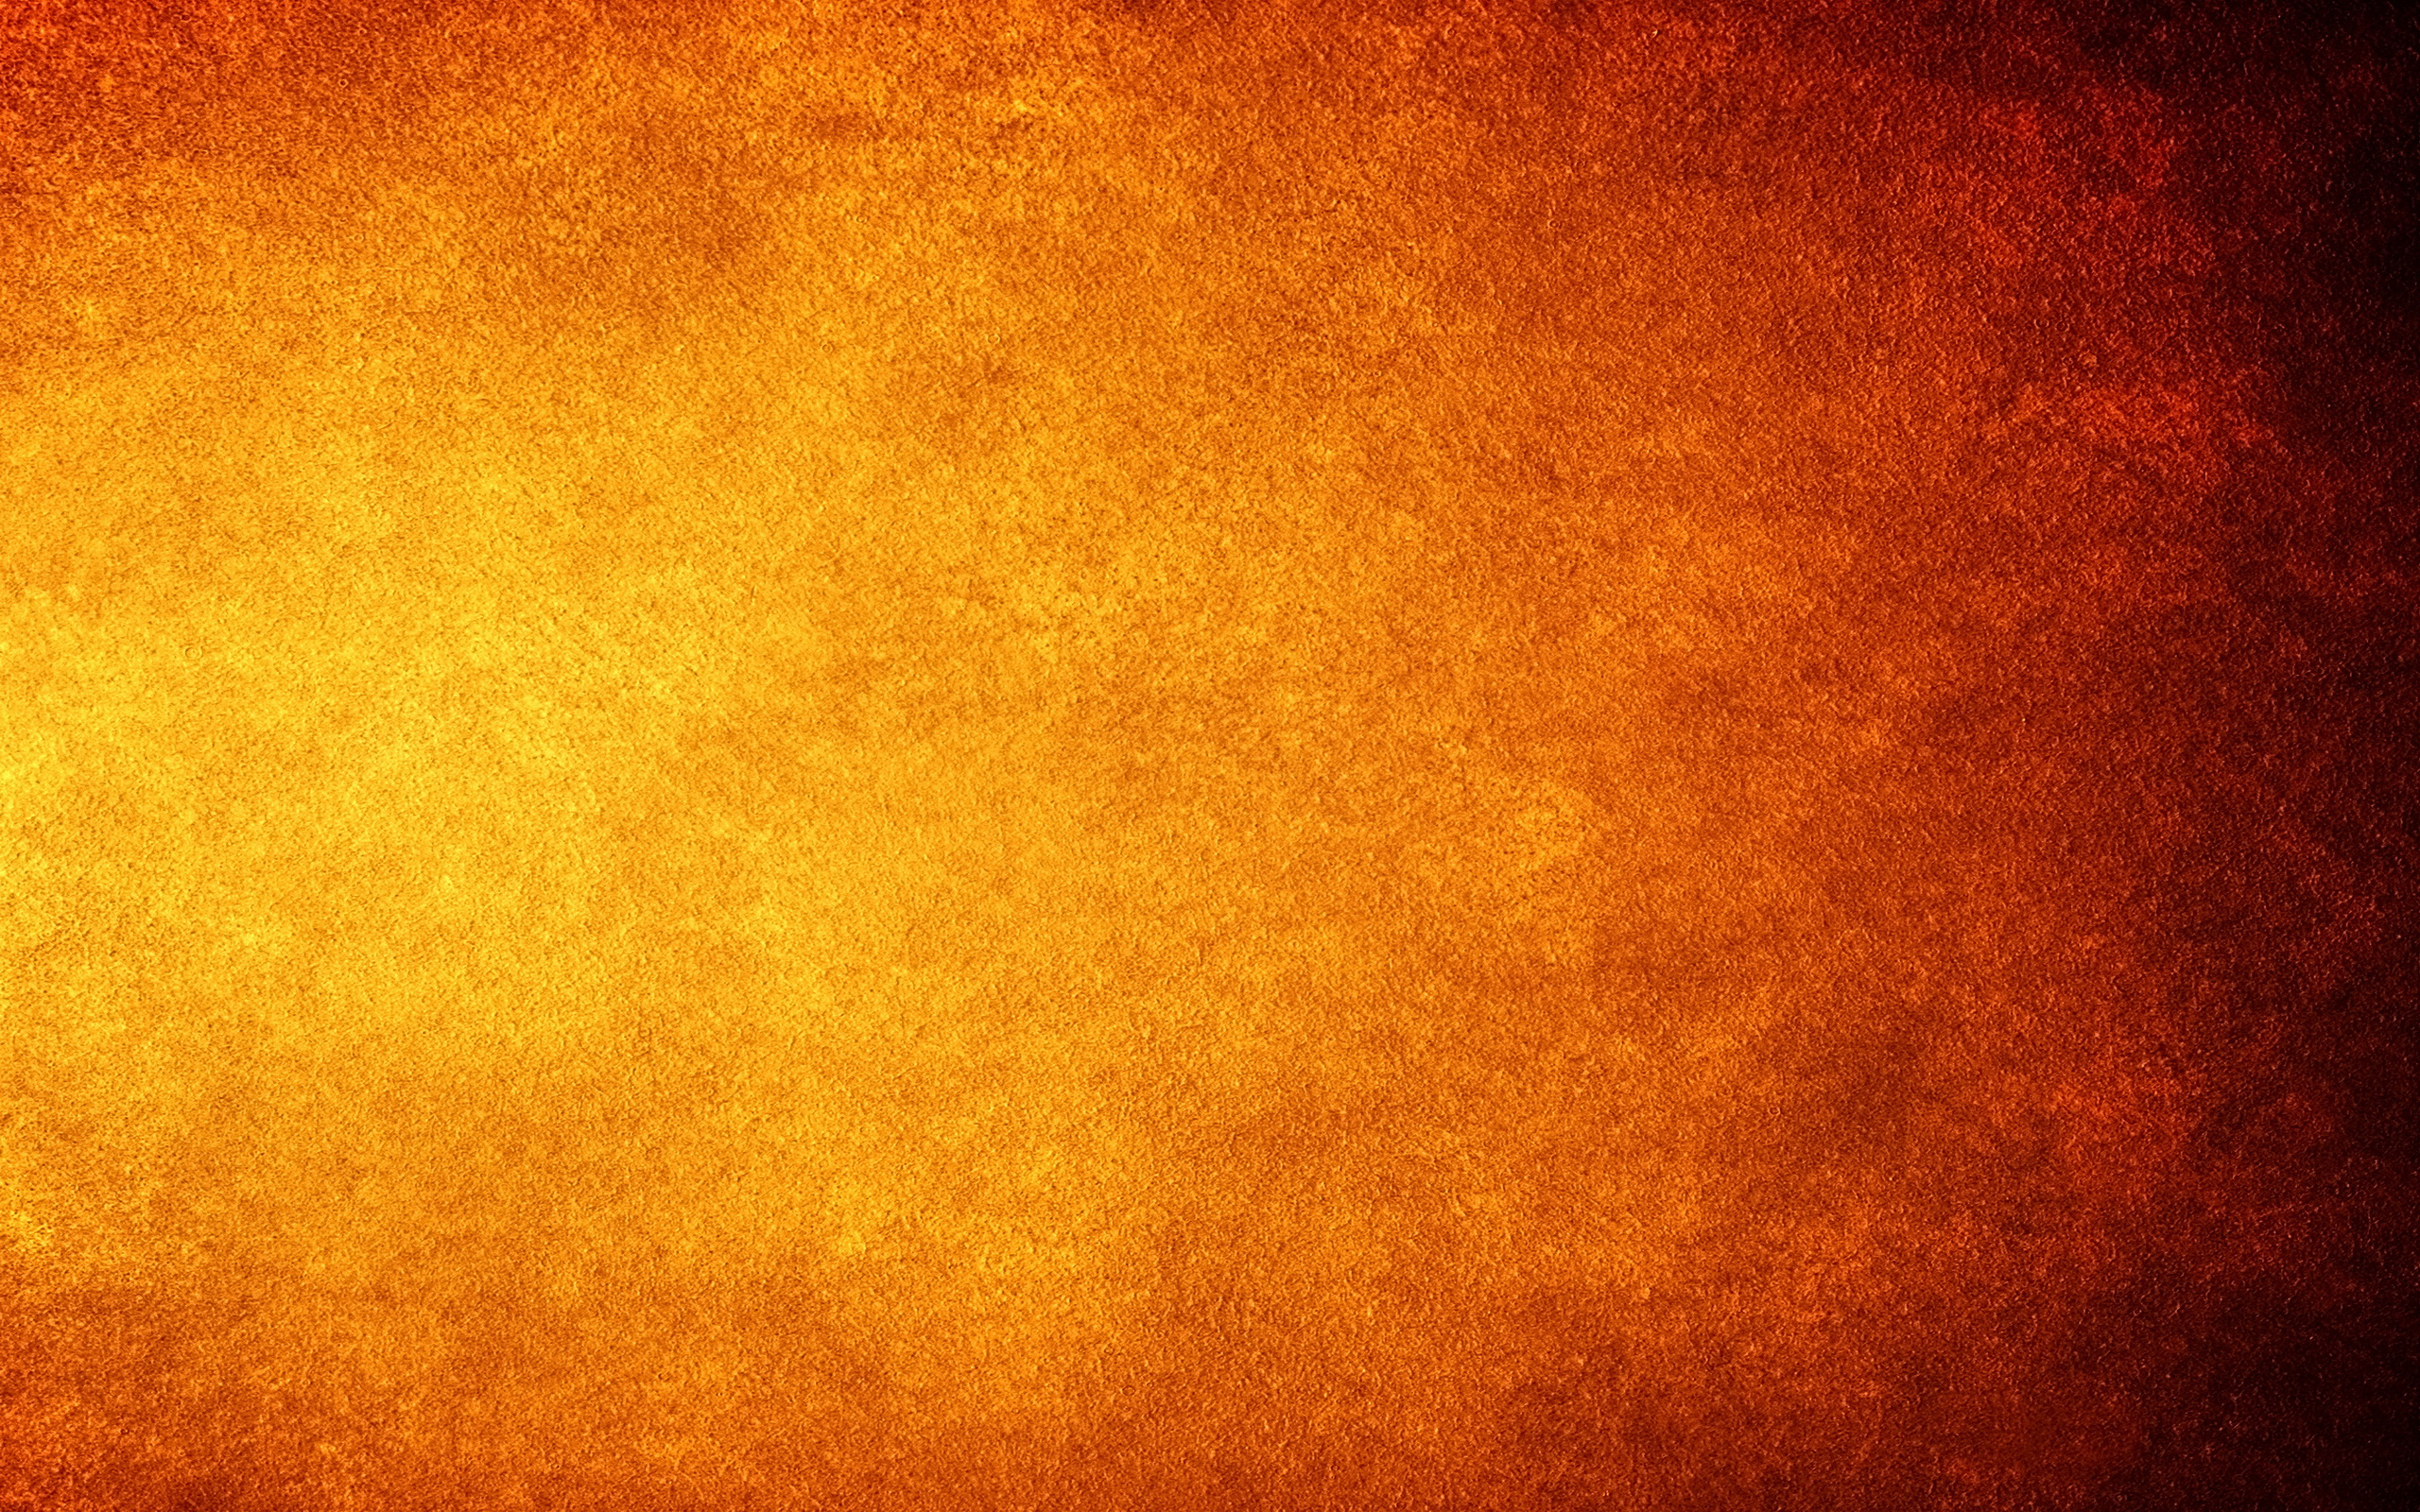 Orange Red Computer Wallpapers Desktop Backgrounds 2560x1600 ID 2560x1600